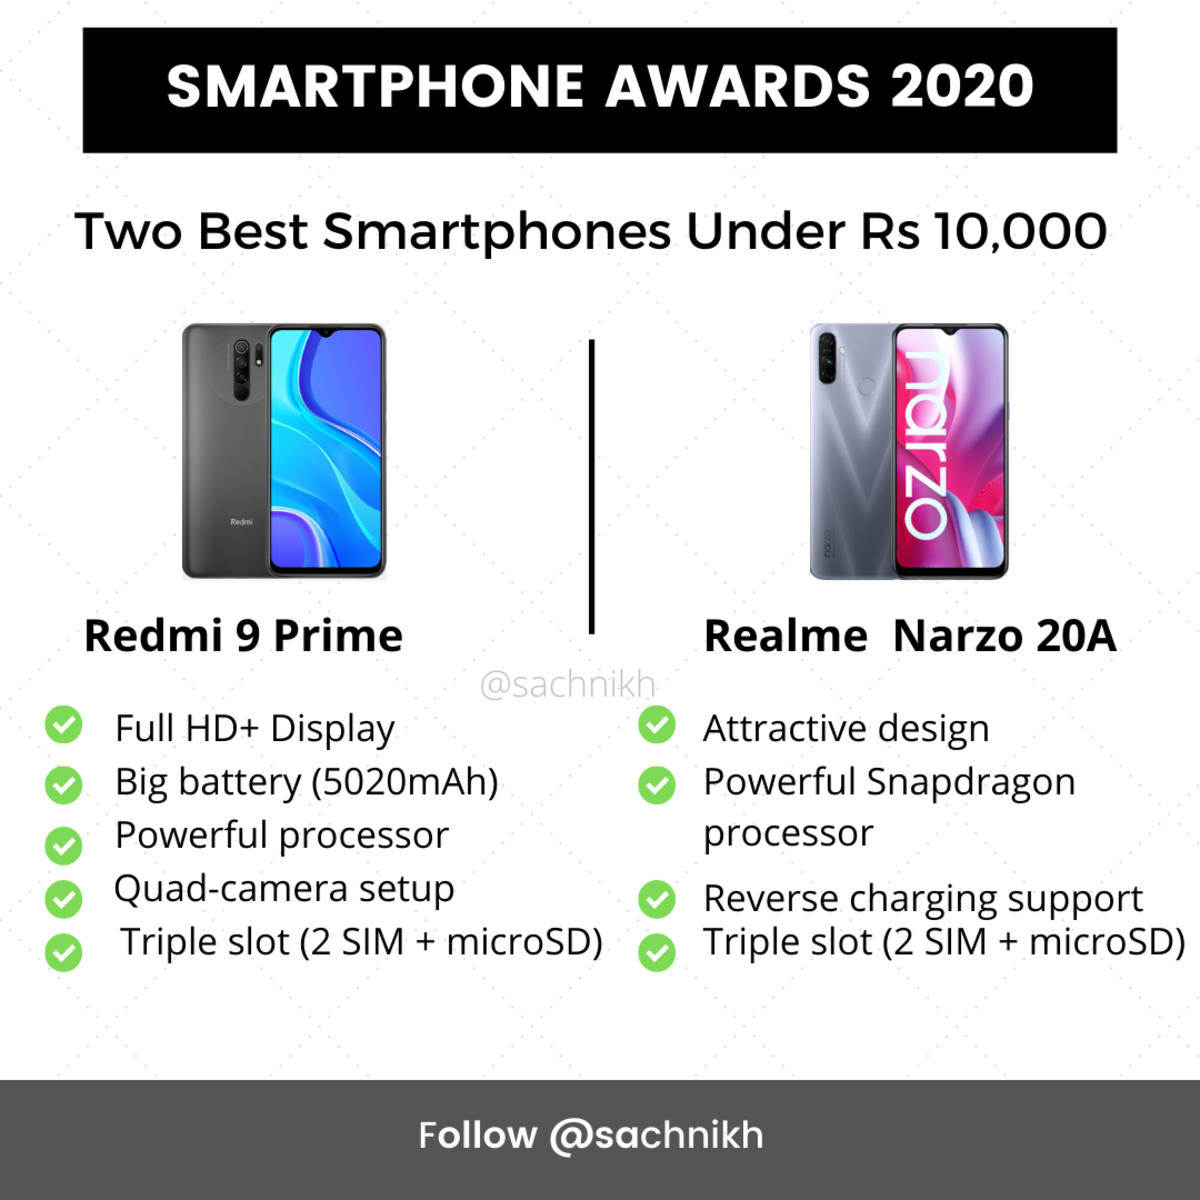 Redmi 9 Prime and Realme Narzo 20A